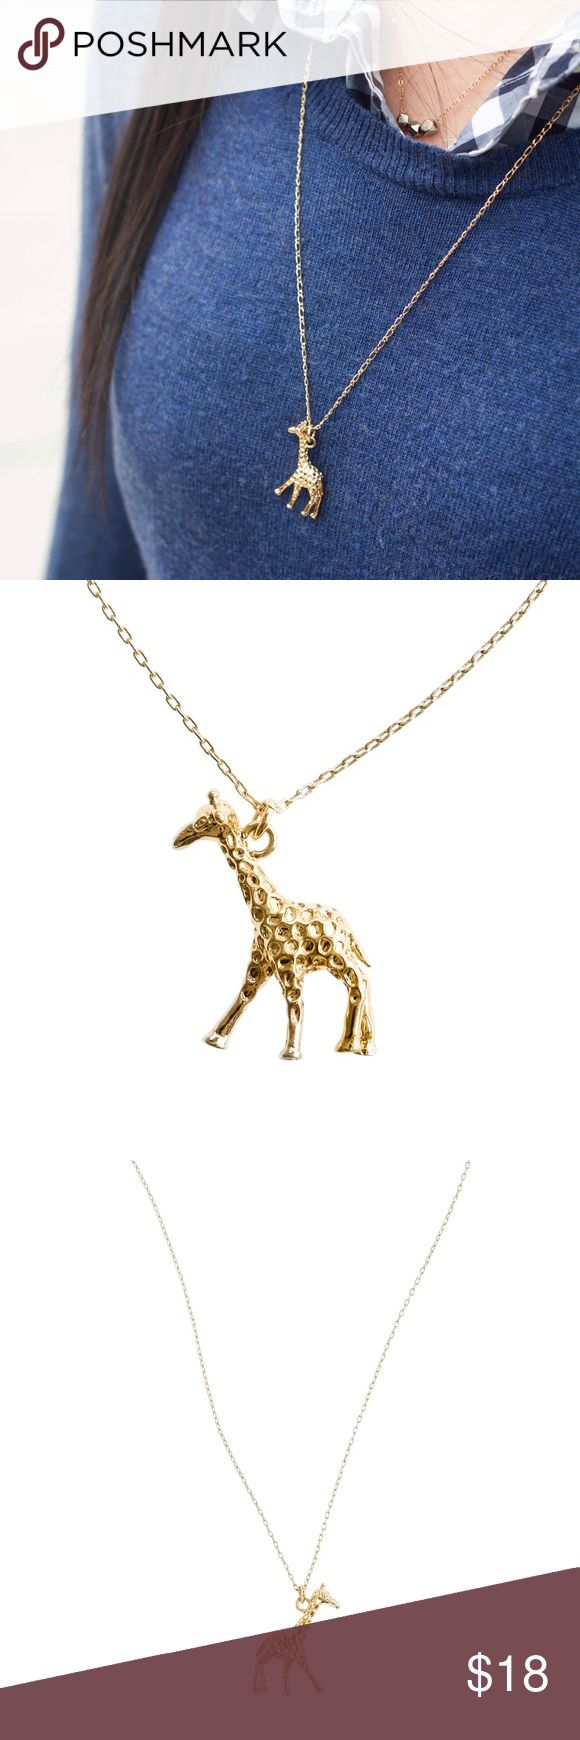 """J.Crew Giraffe Charm Necklace Necklace is in perfect condition and only worn once. Length including giraffe is about 14"""". Total chain length is 26"""". This necklace length is not adjustable. J. Crew Jewelry Necklaces"""